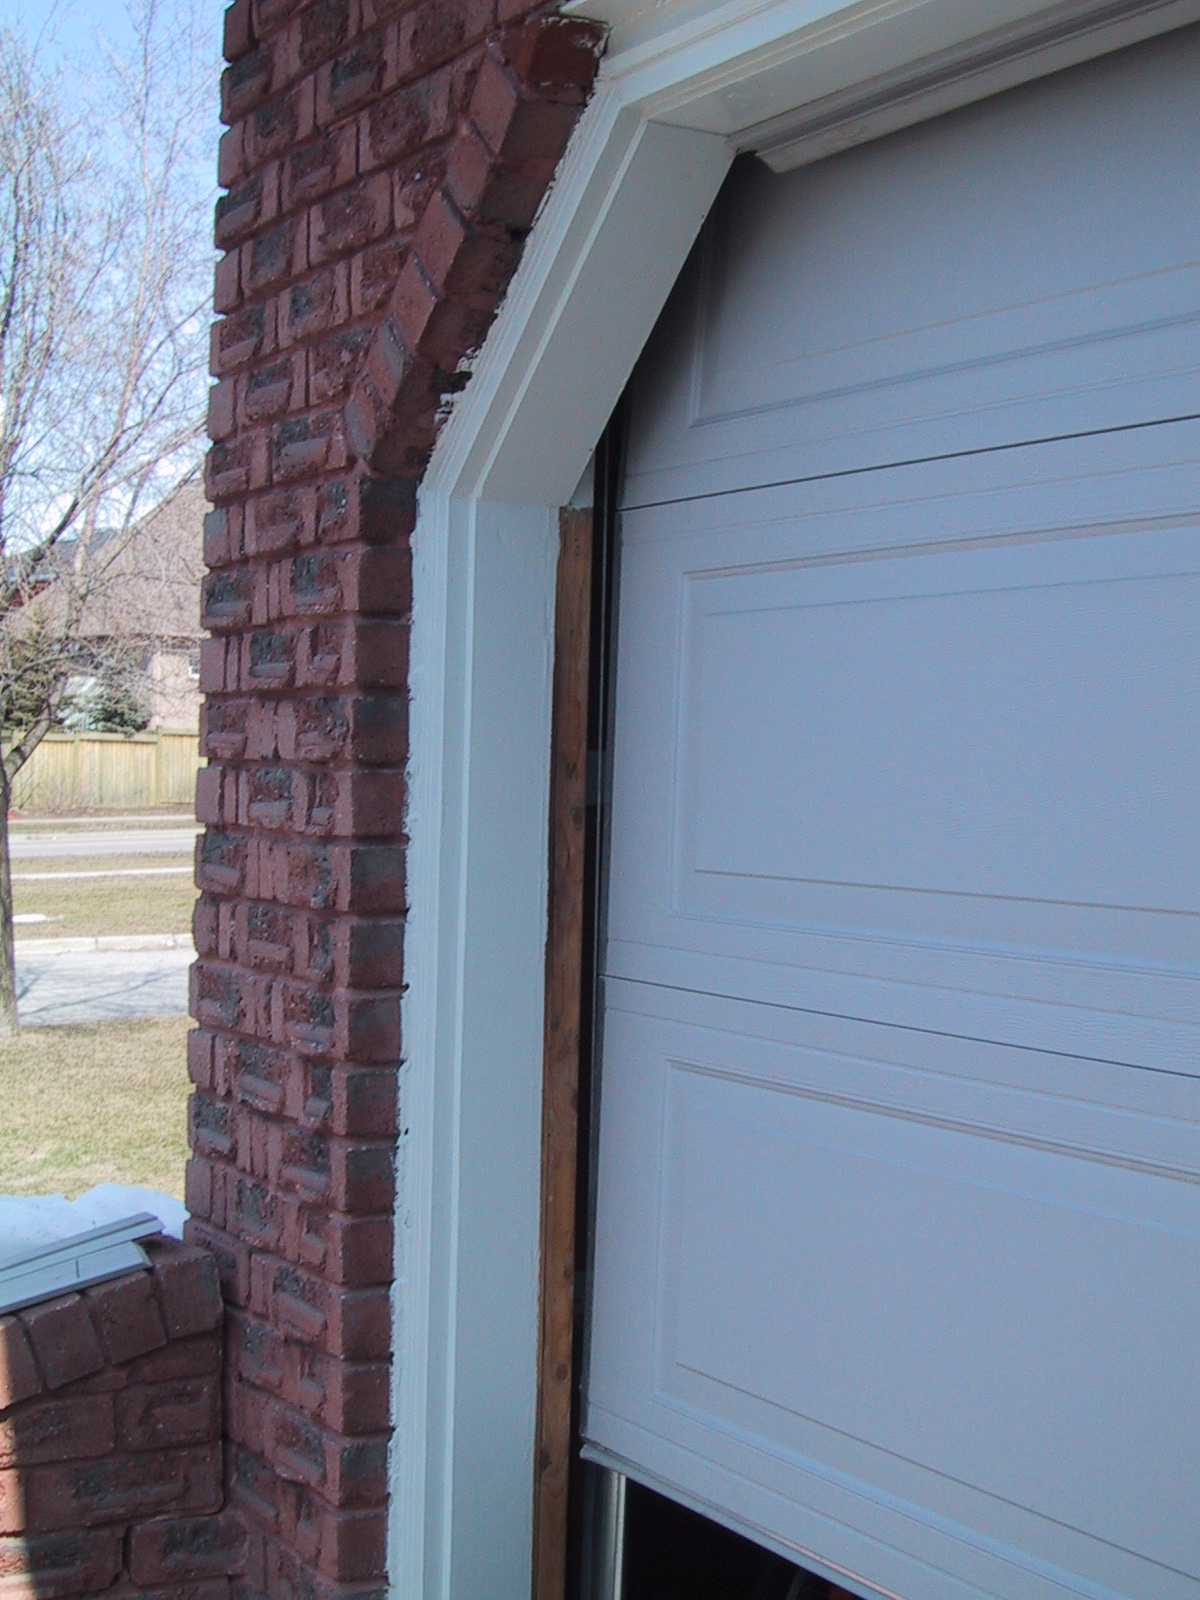 Garage Door Frame With No Weather Stripping (Image 3 of 10)